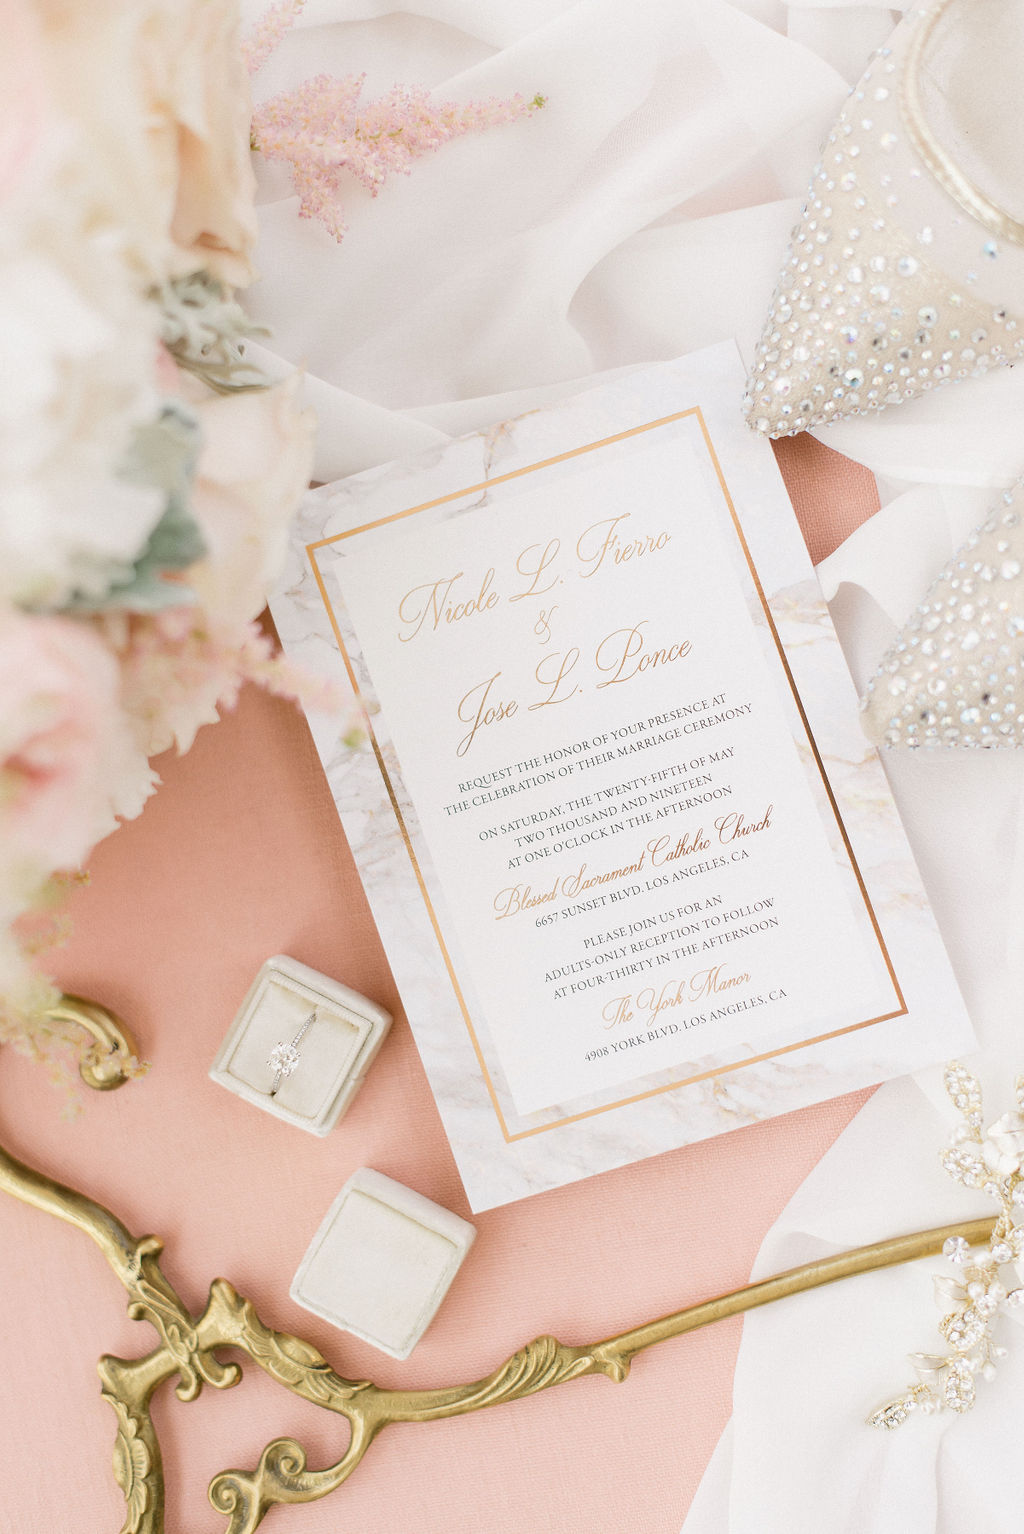 blush and floral wedding invitation with a border